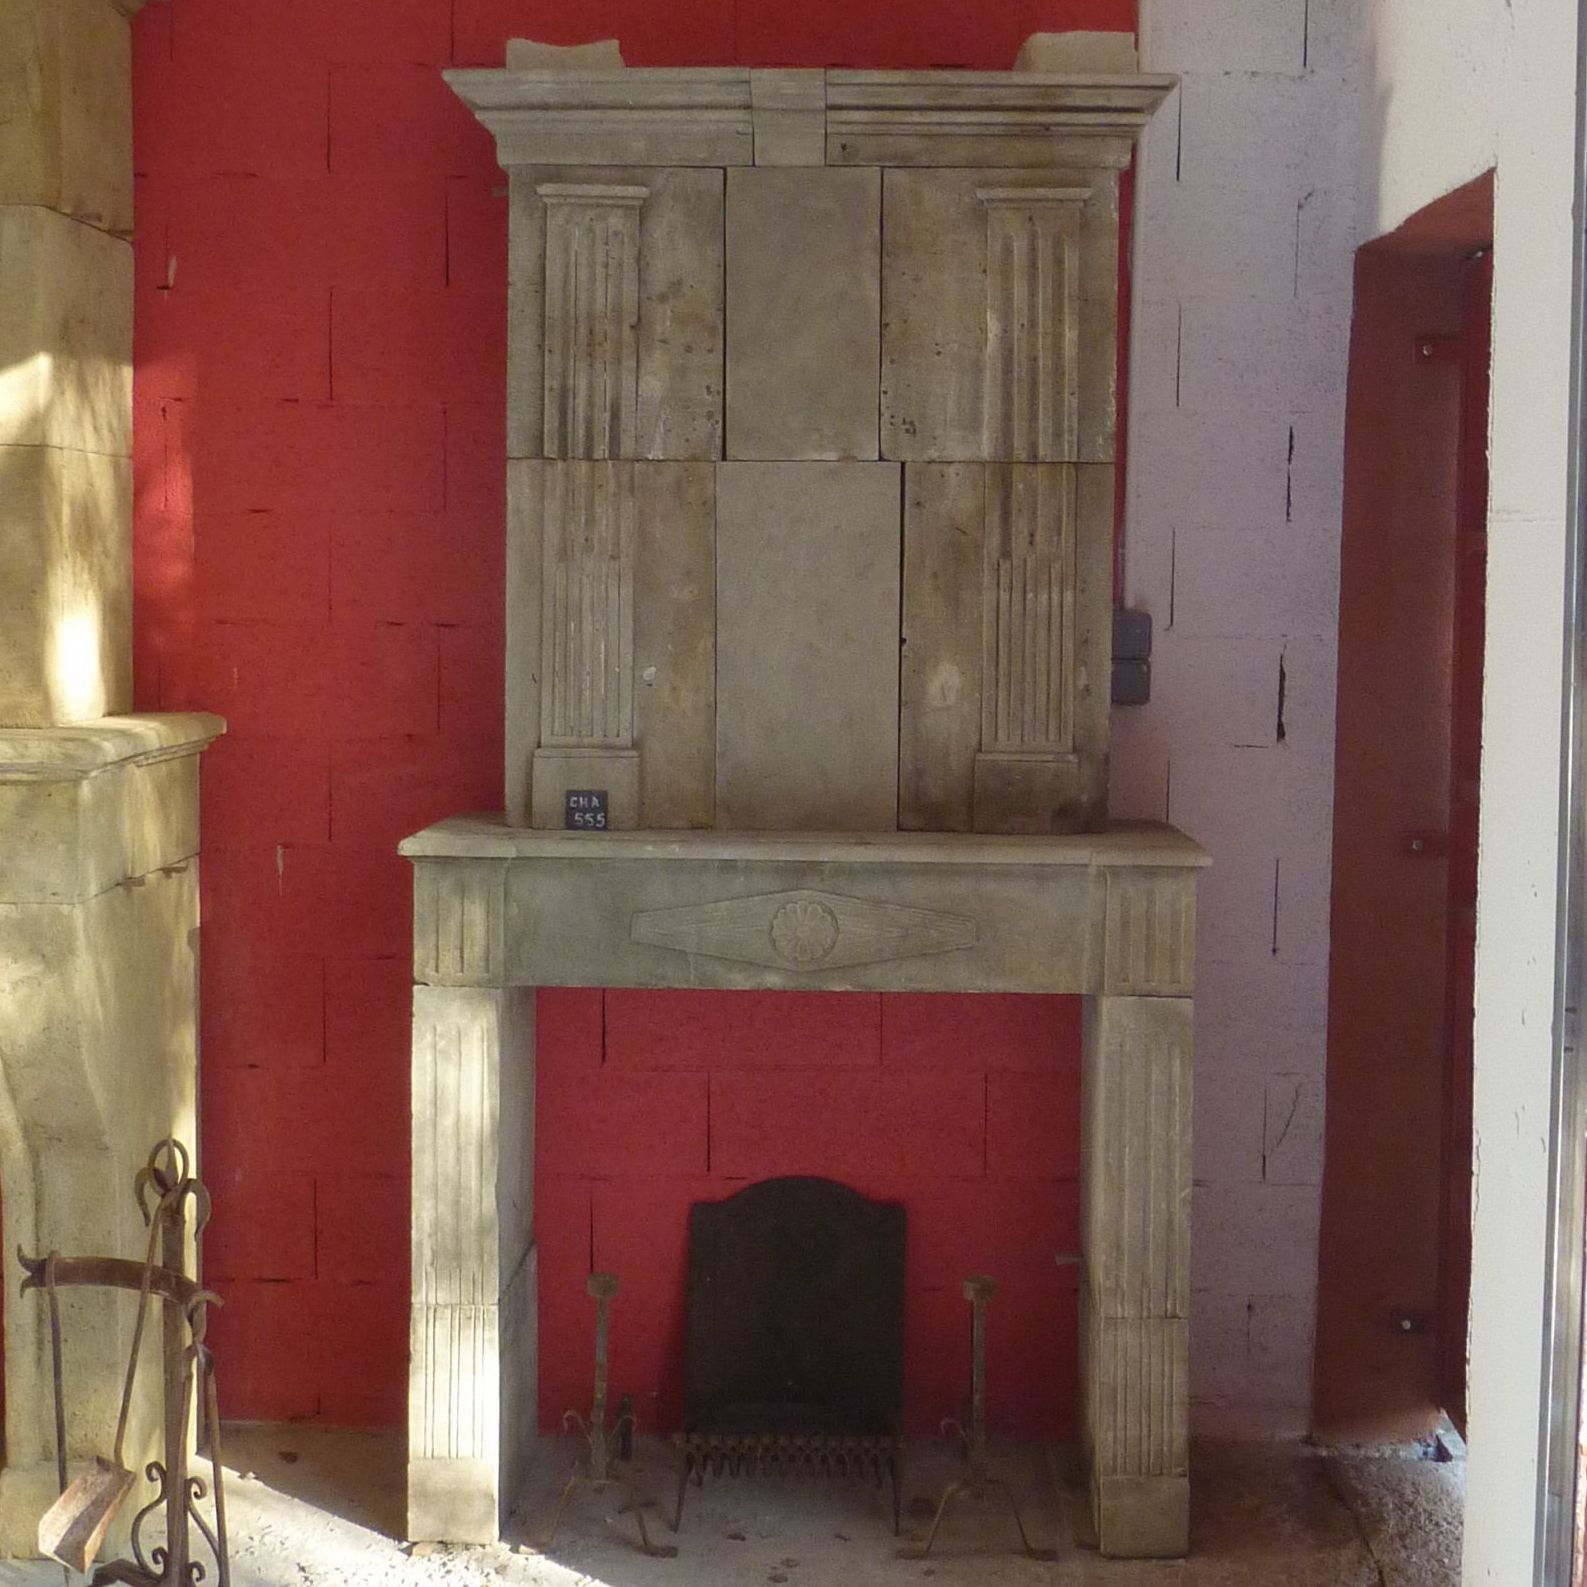 Louis XVI fireplace to decorate a bedroom for example.